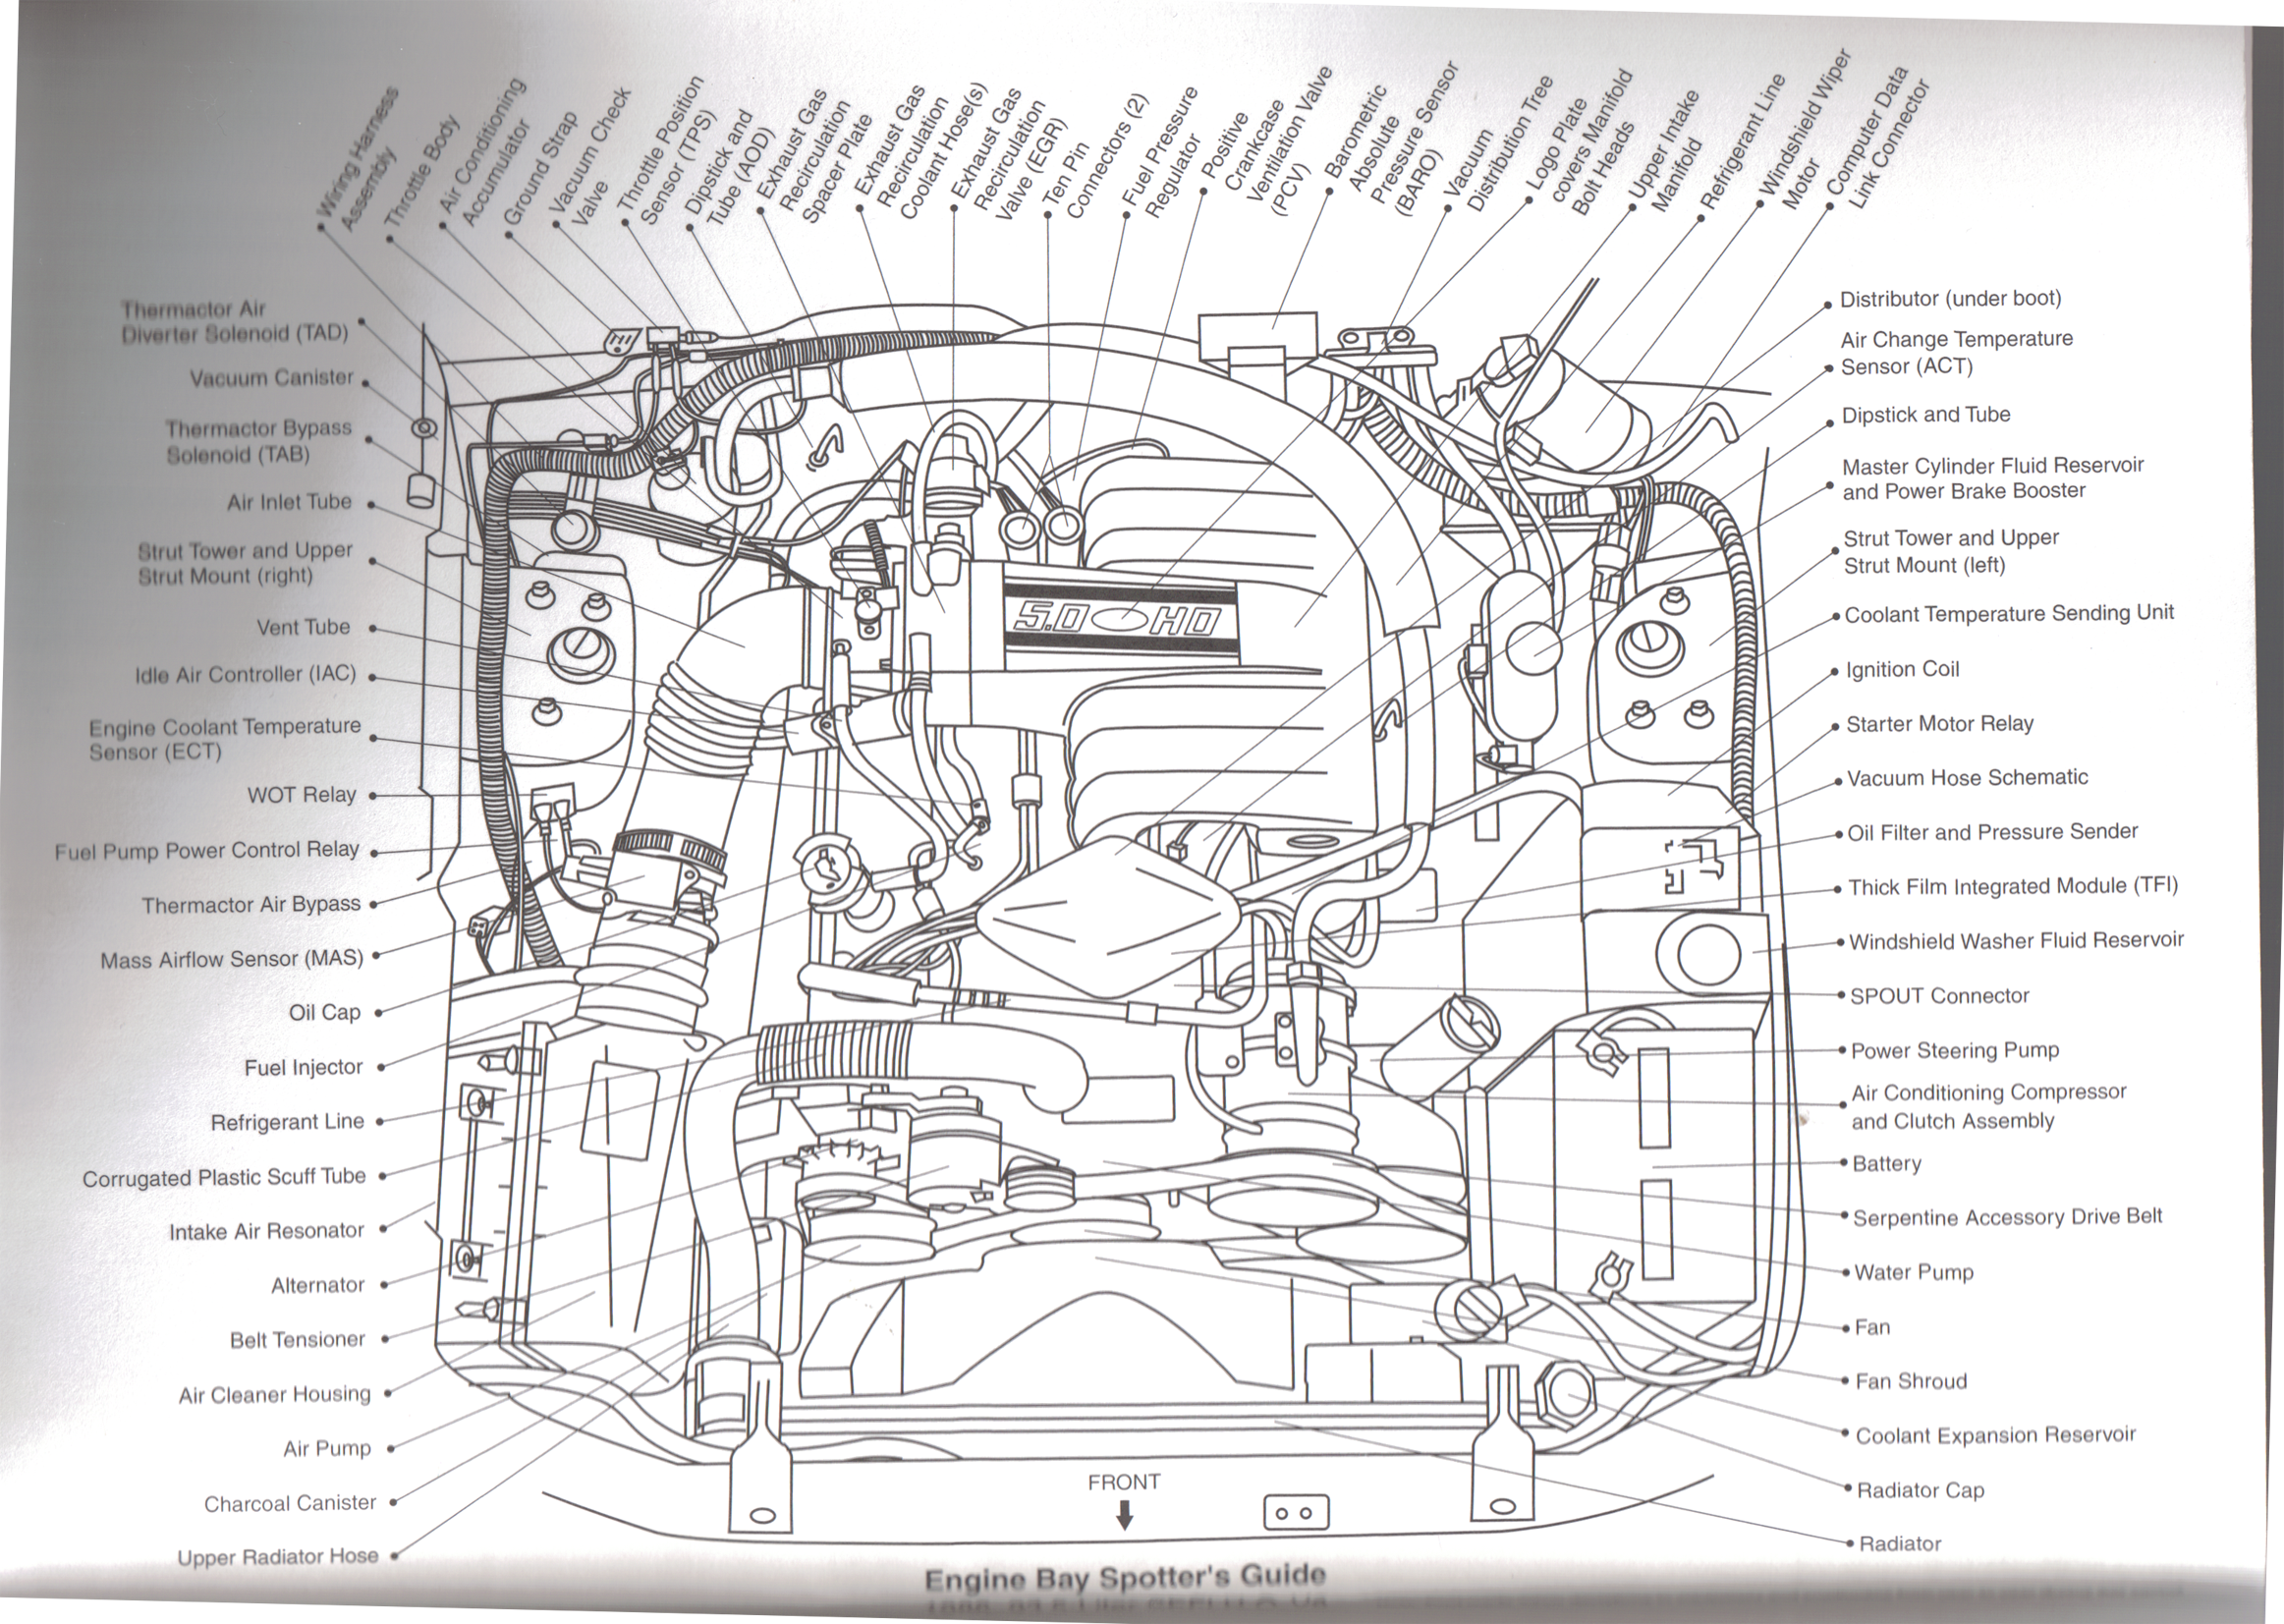 1987-1993 Foxbody 5.0 SEFI V8 Engine Part Diagram